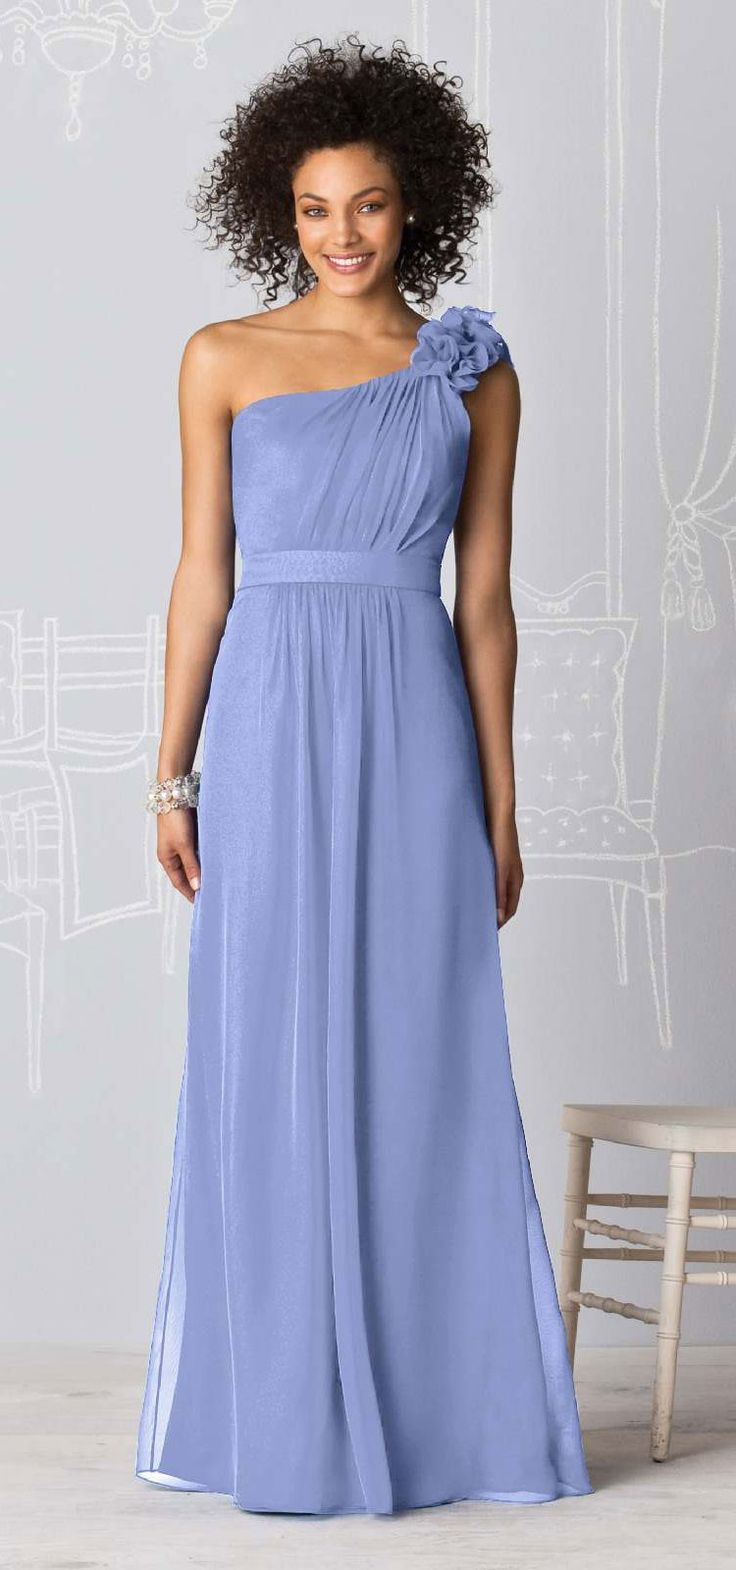 Best 25 periwinkle bridesmaid dresses ideas on pinterest bright periwinkle bridesmaid dress this would be beautiful shorter ombrellifo Images